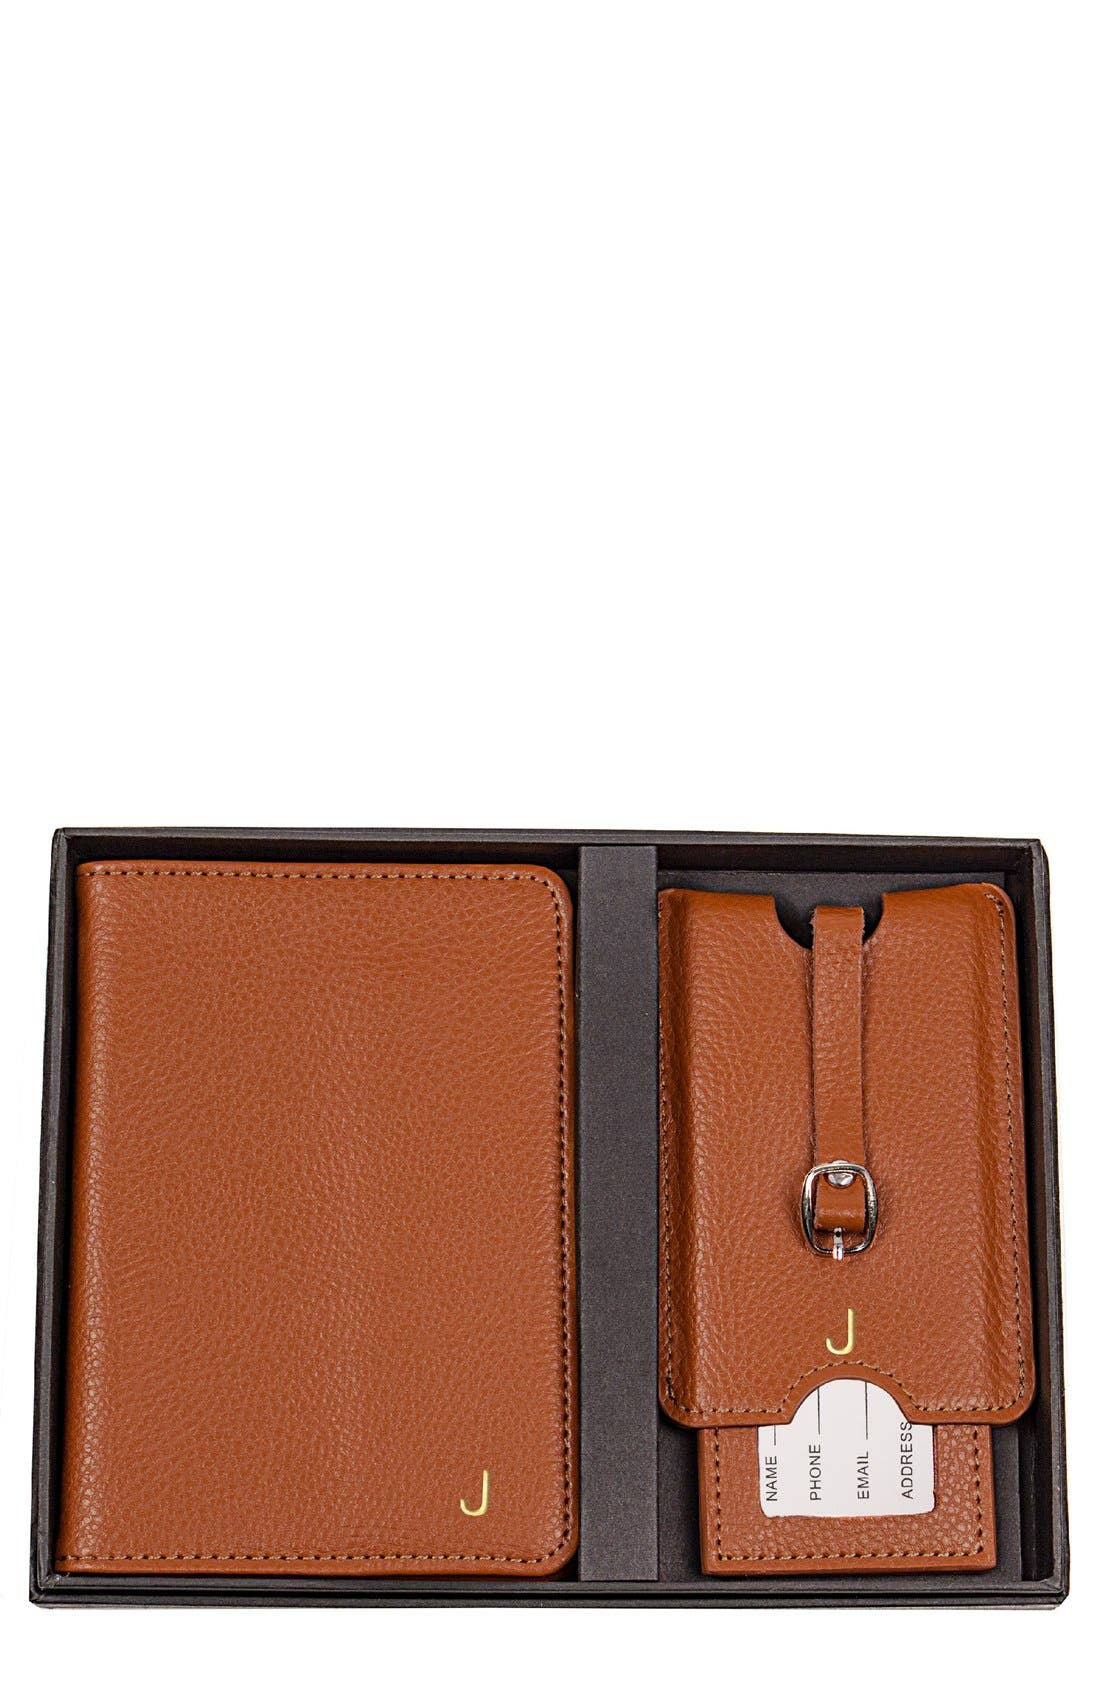 Monogram Passport Case & Luggage Tag,                         Main,                         color, Brown - J